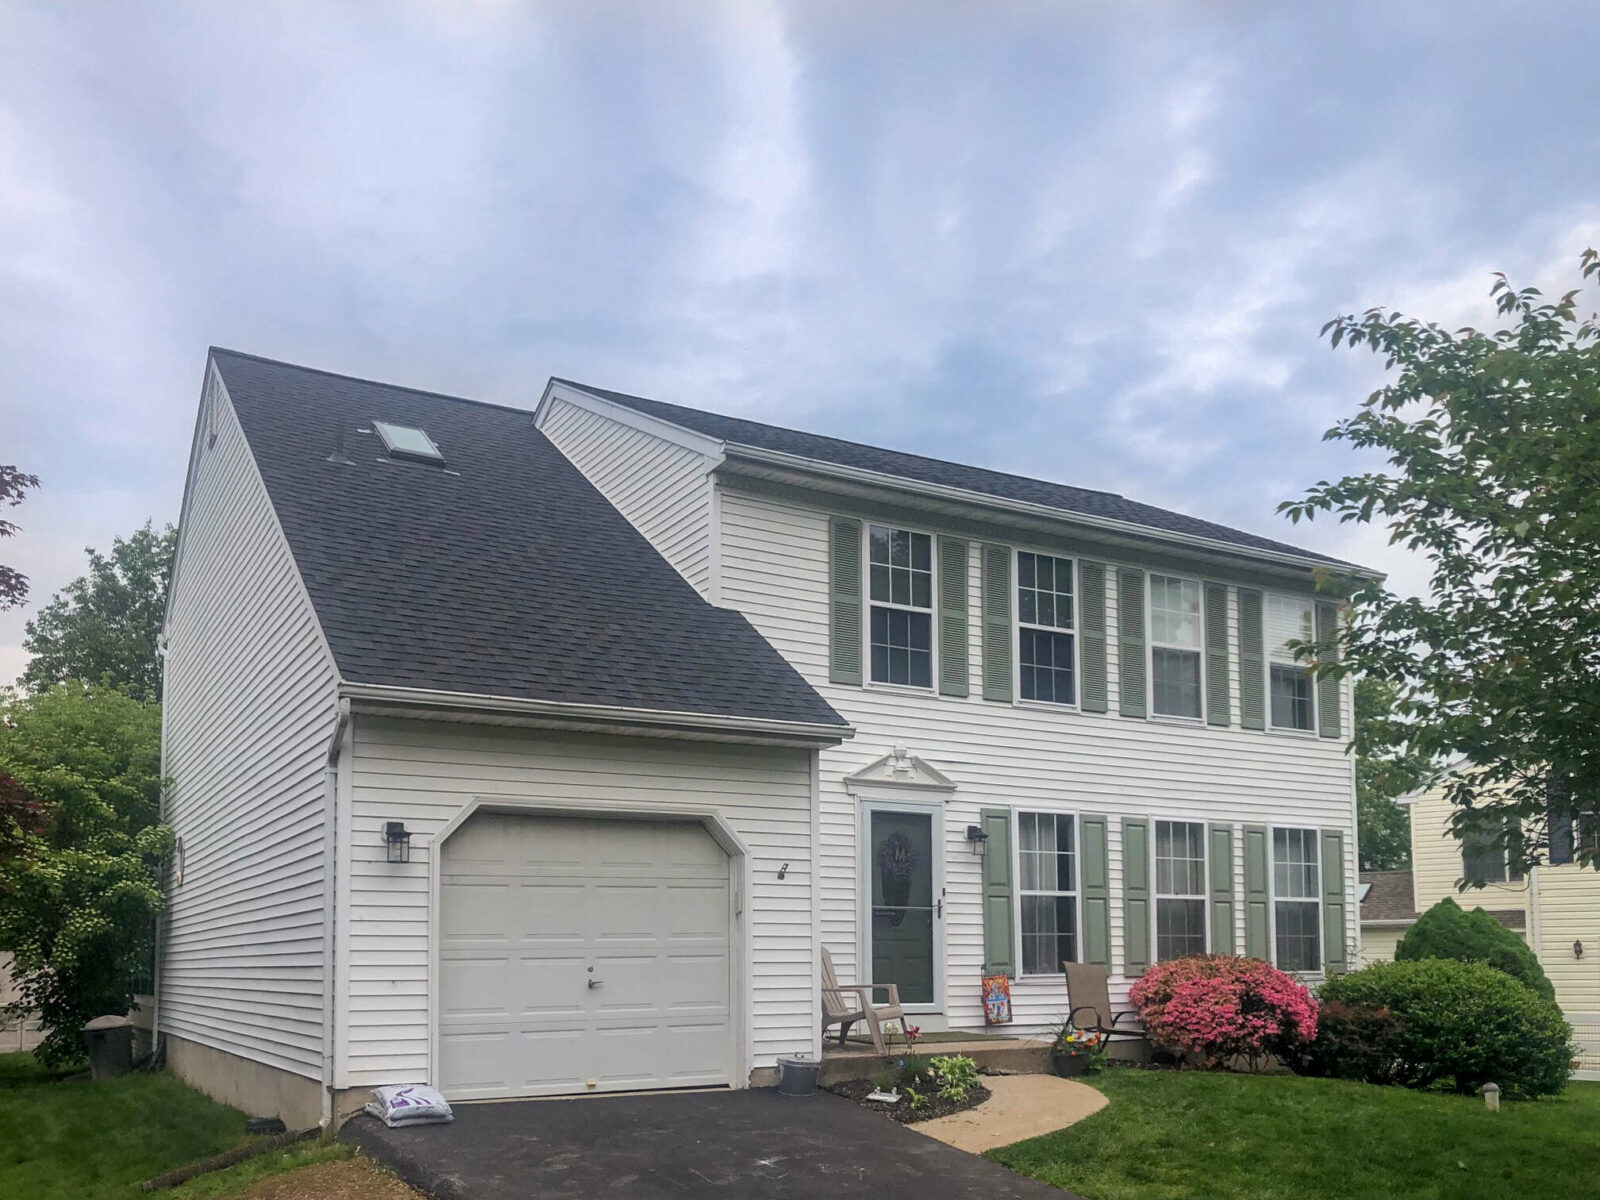 New siding in Royersford, PA